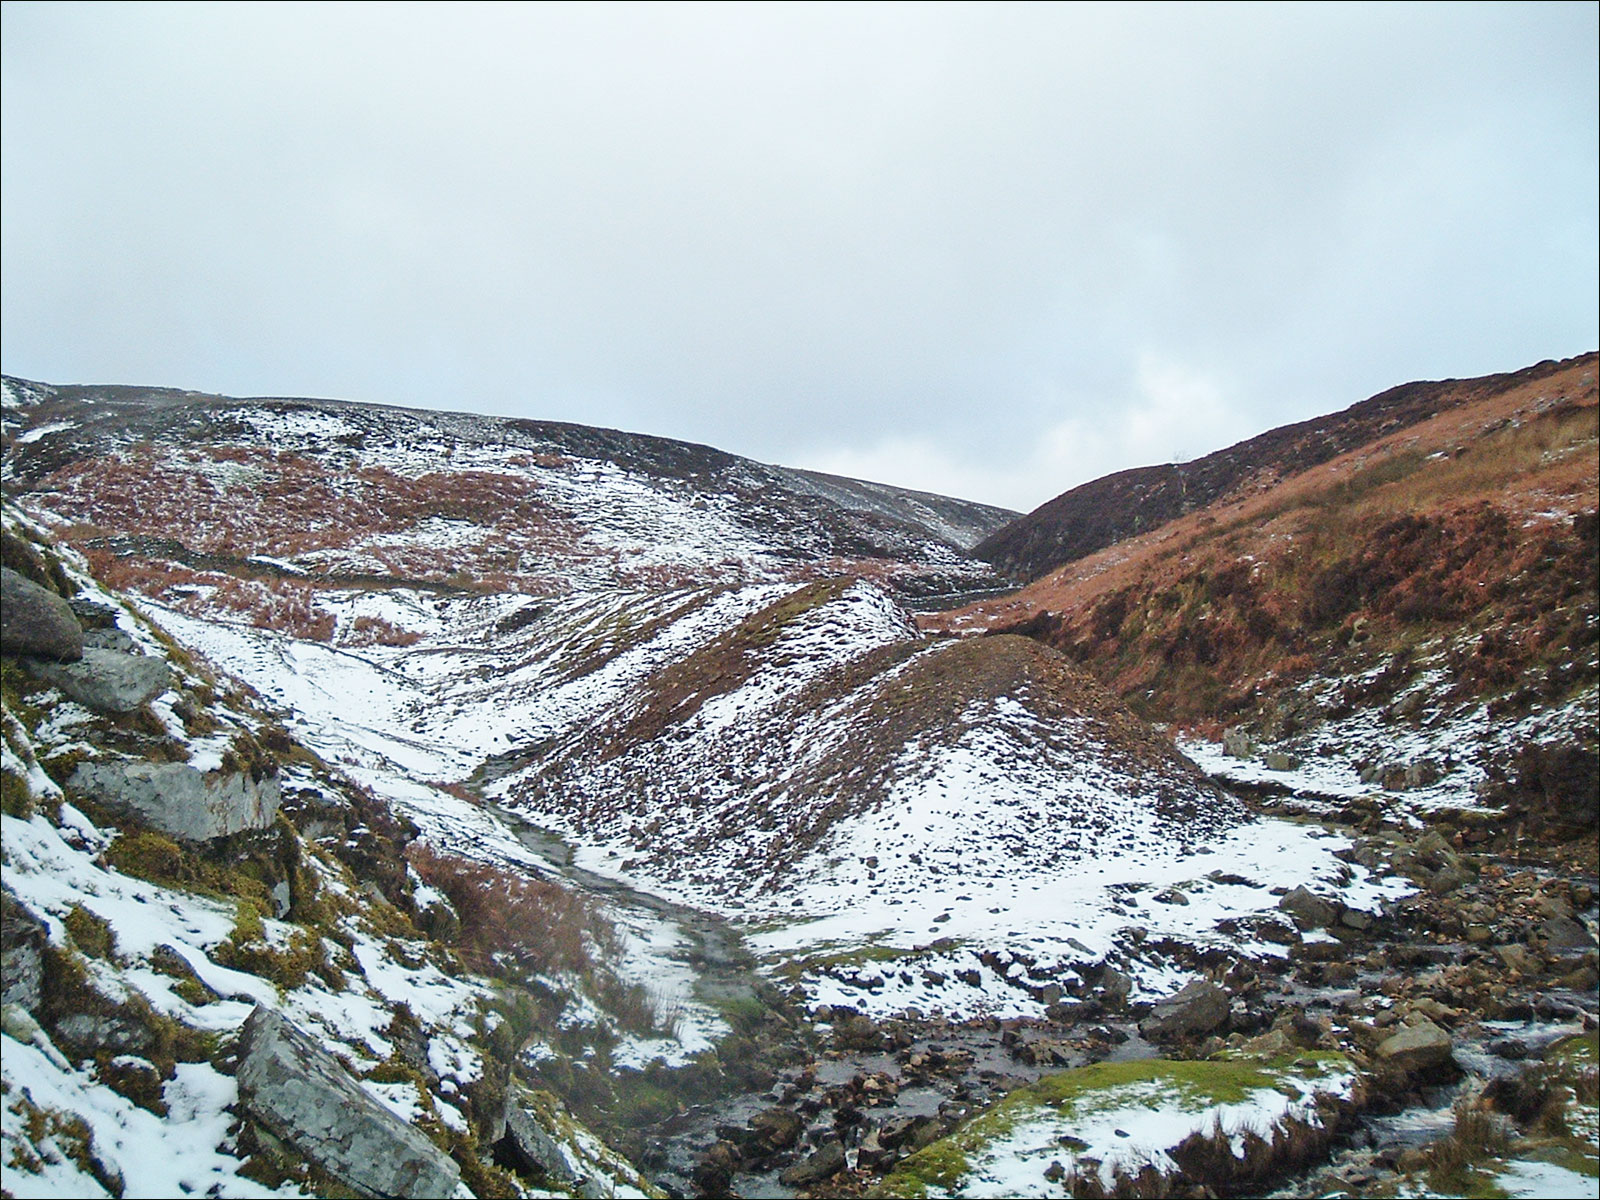 Barras End mine, Swaledale, Main dumps